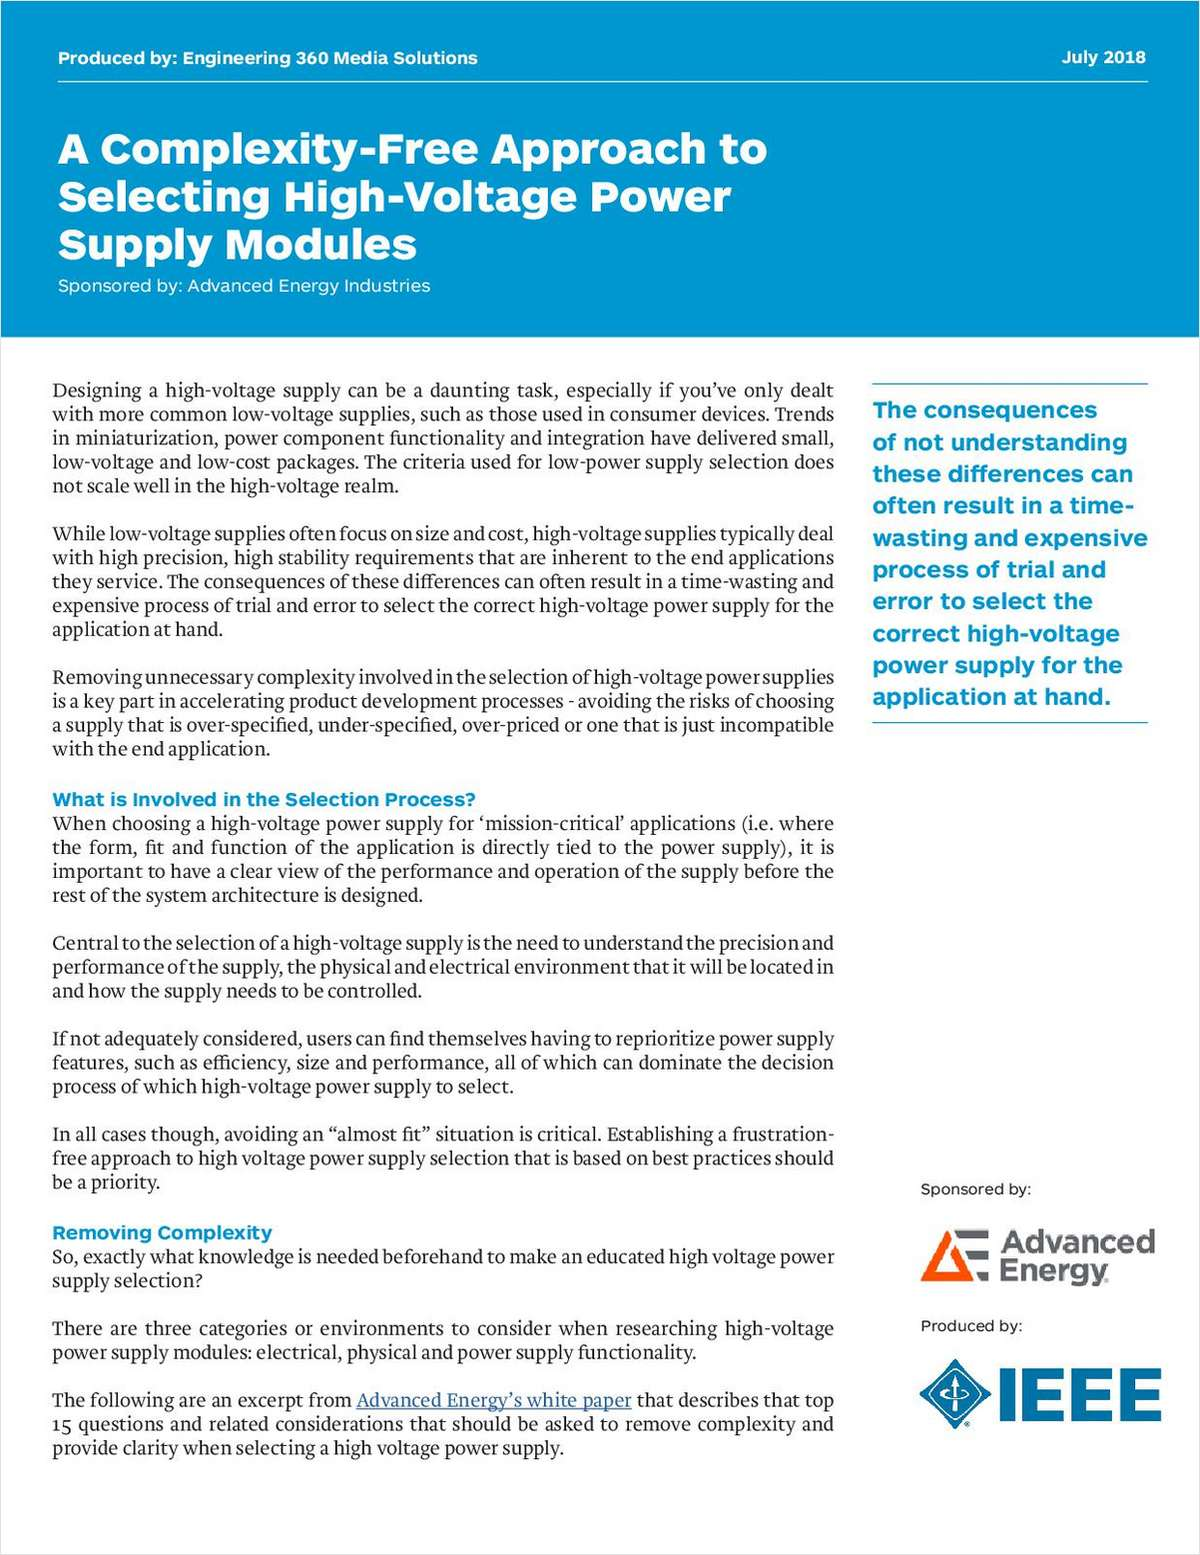 A Complexity-Free Approach to Selecting High-Voltage Power Supply Modules